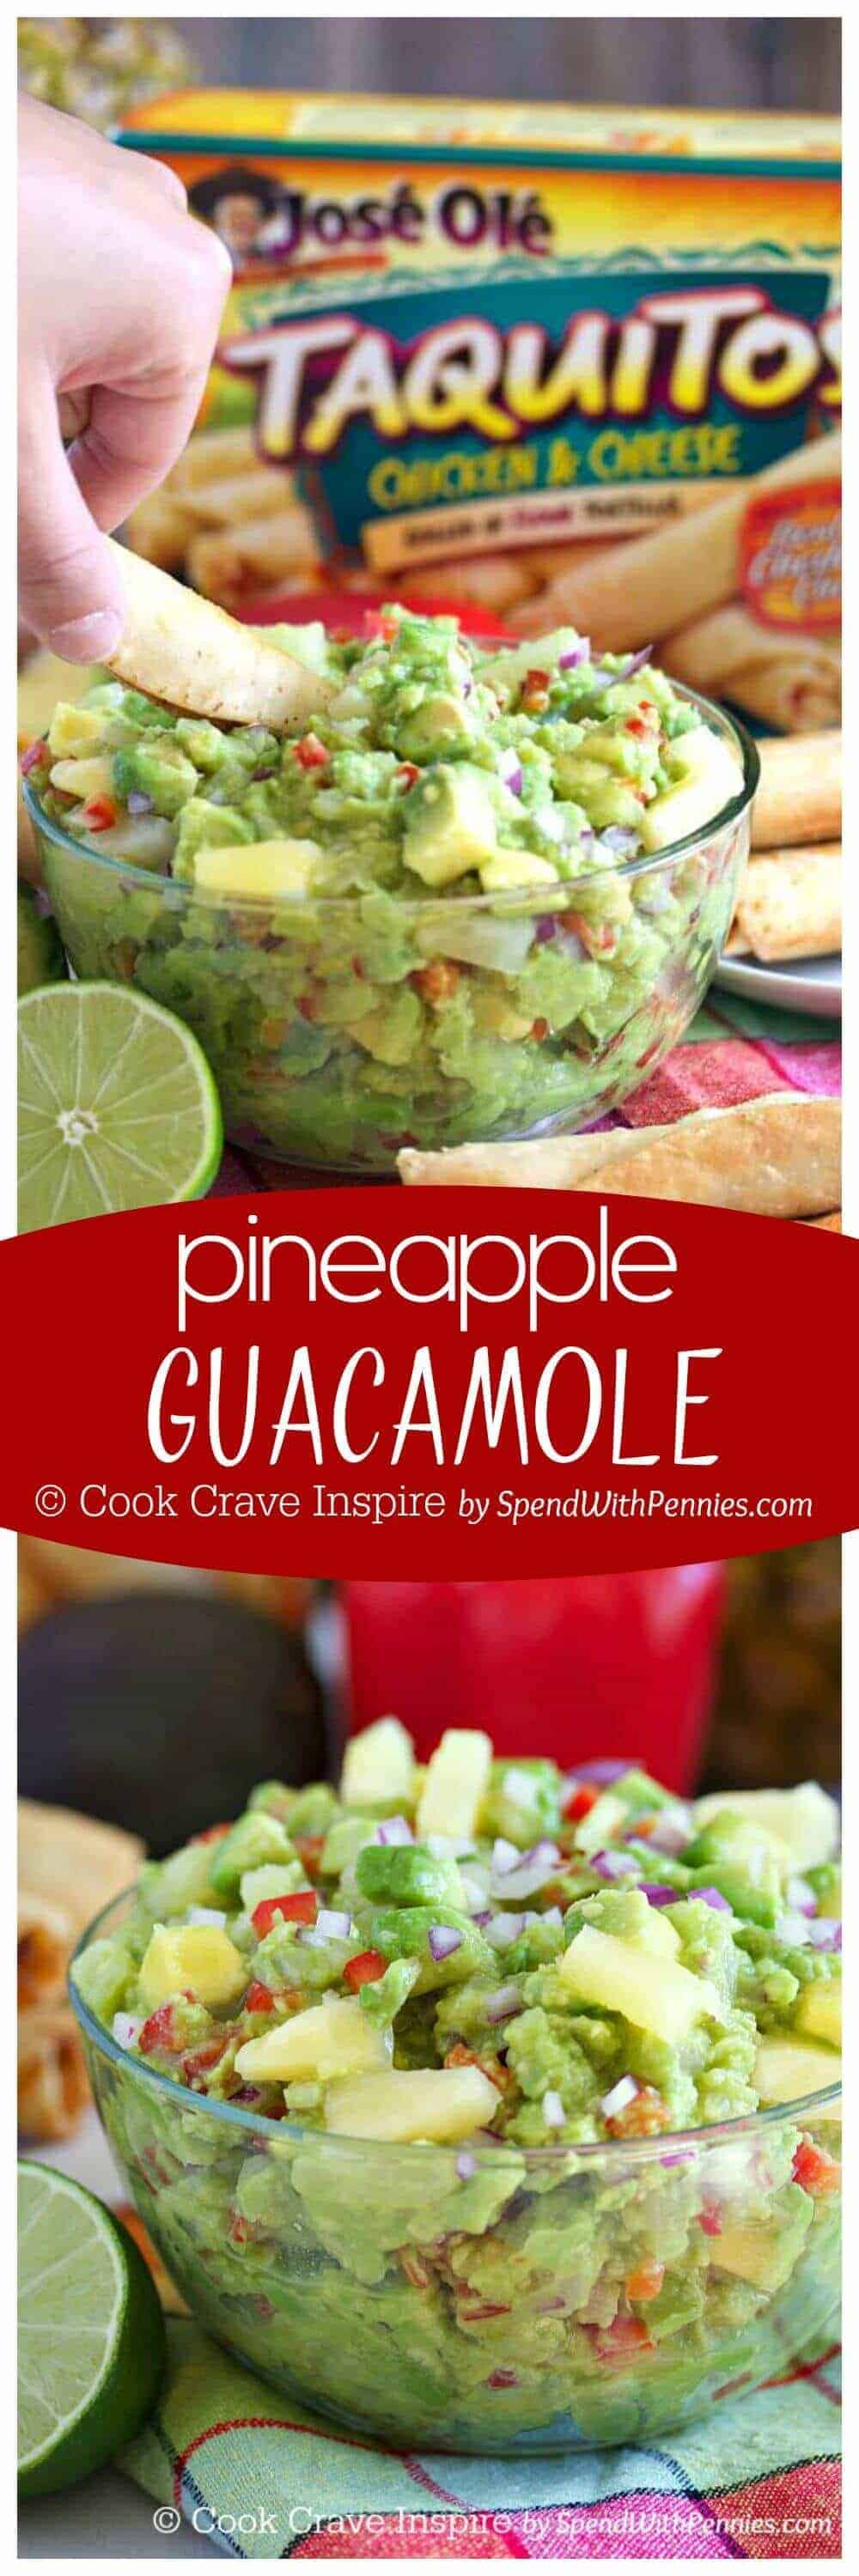 Pineapple Guacamole! Buttery avocado with fresh pineapple, cumin and onions is the perfect dip for taquitos & chips!